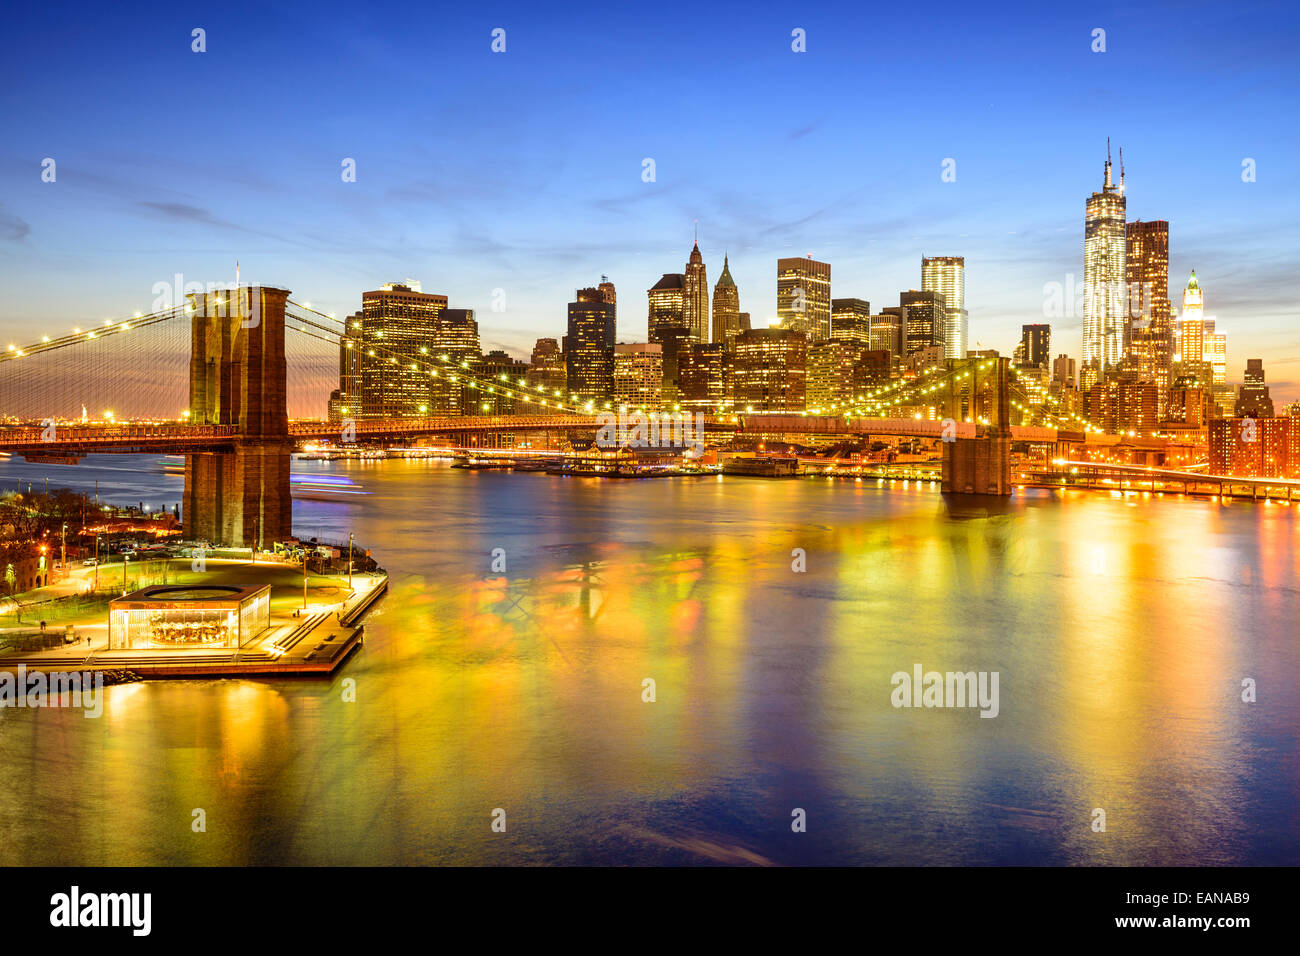 New York City skyline over the East River and Brooklyn Bridge. - Stock Image